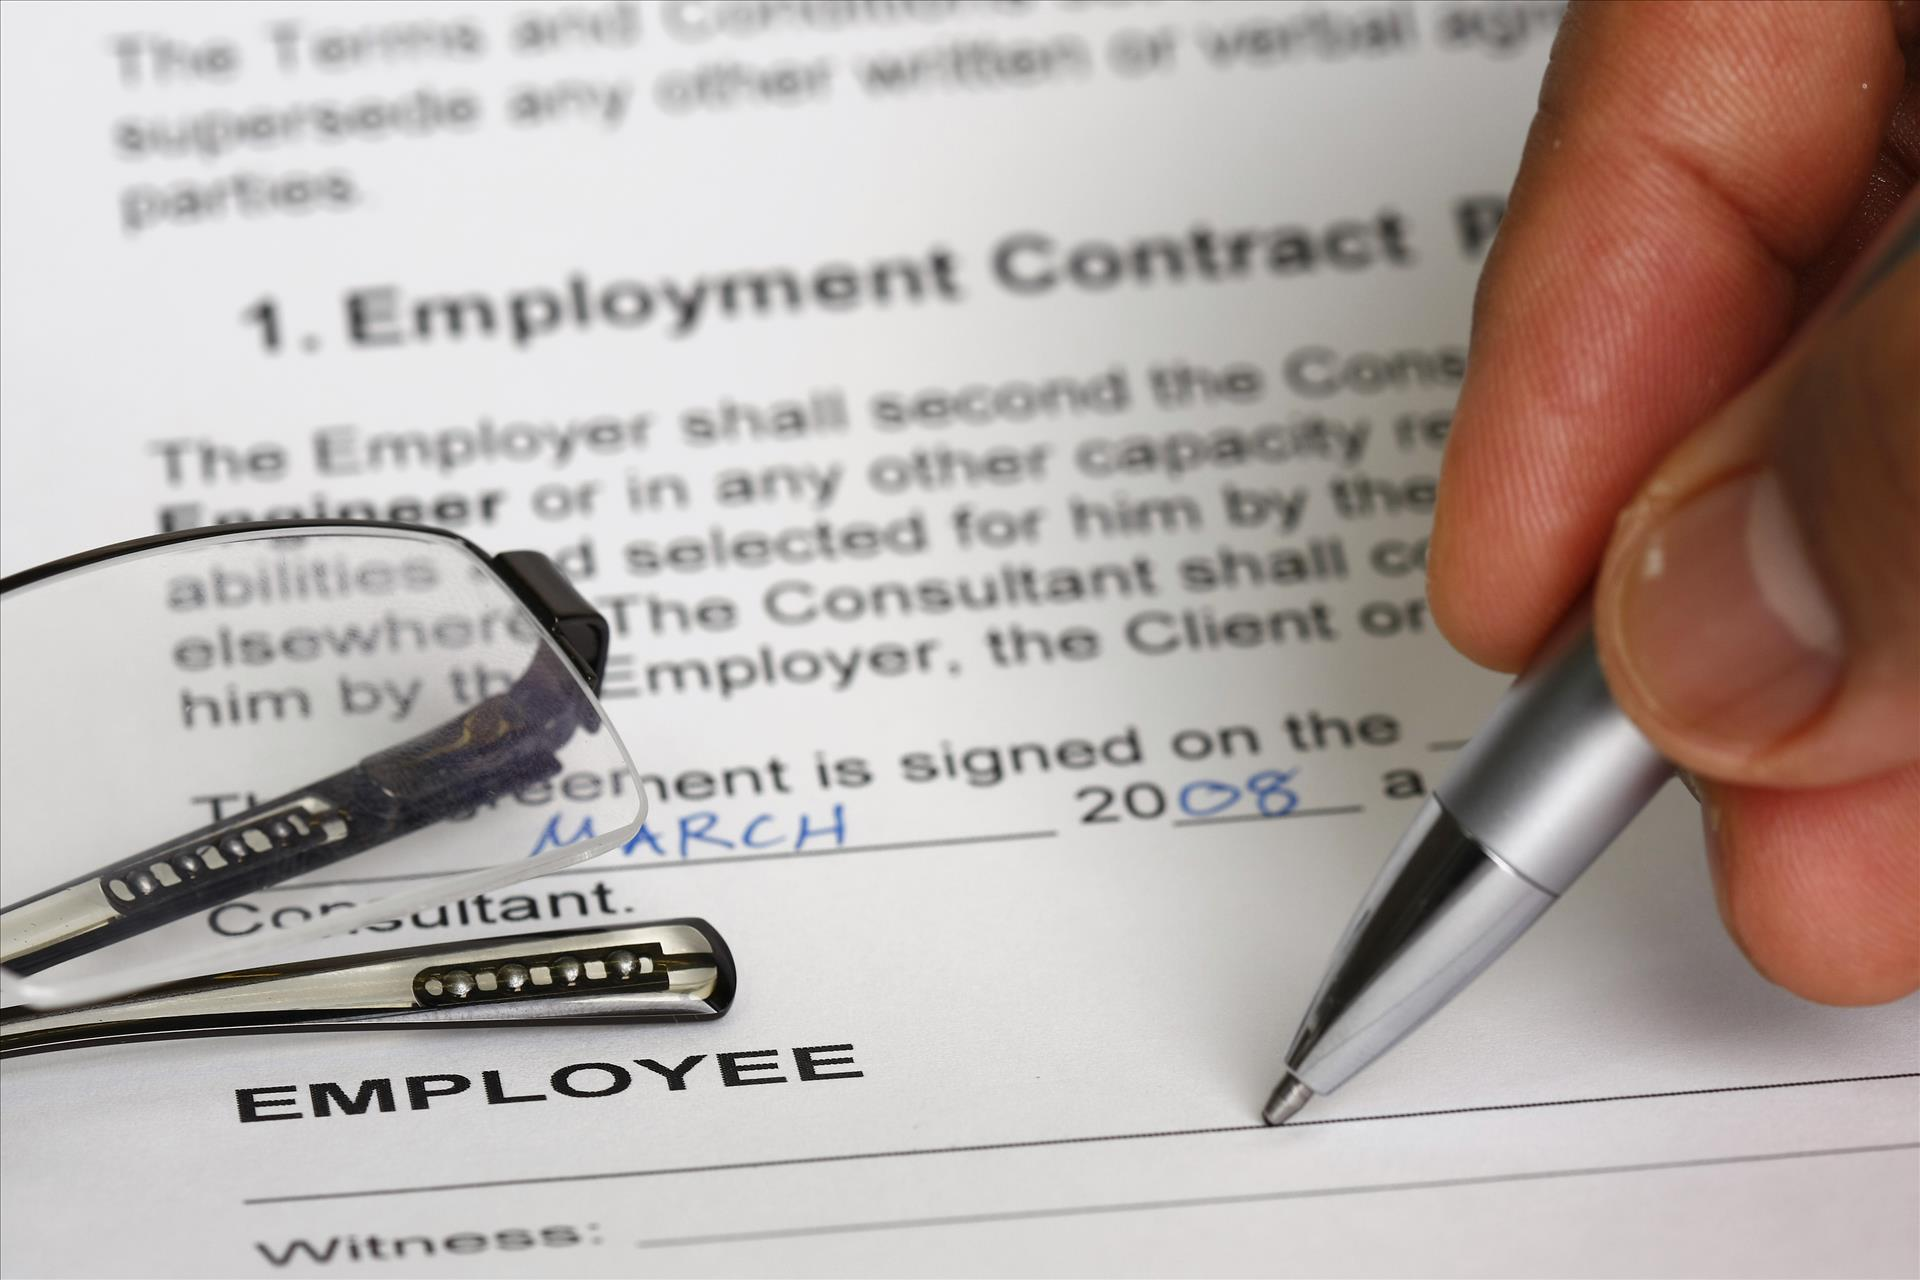 Employment Contracts for all workers